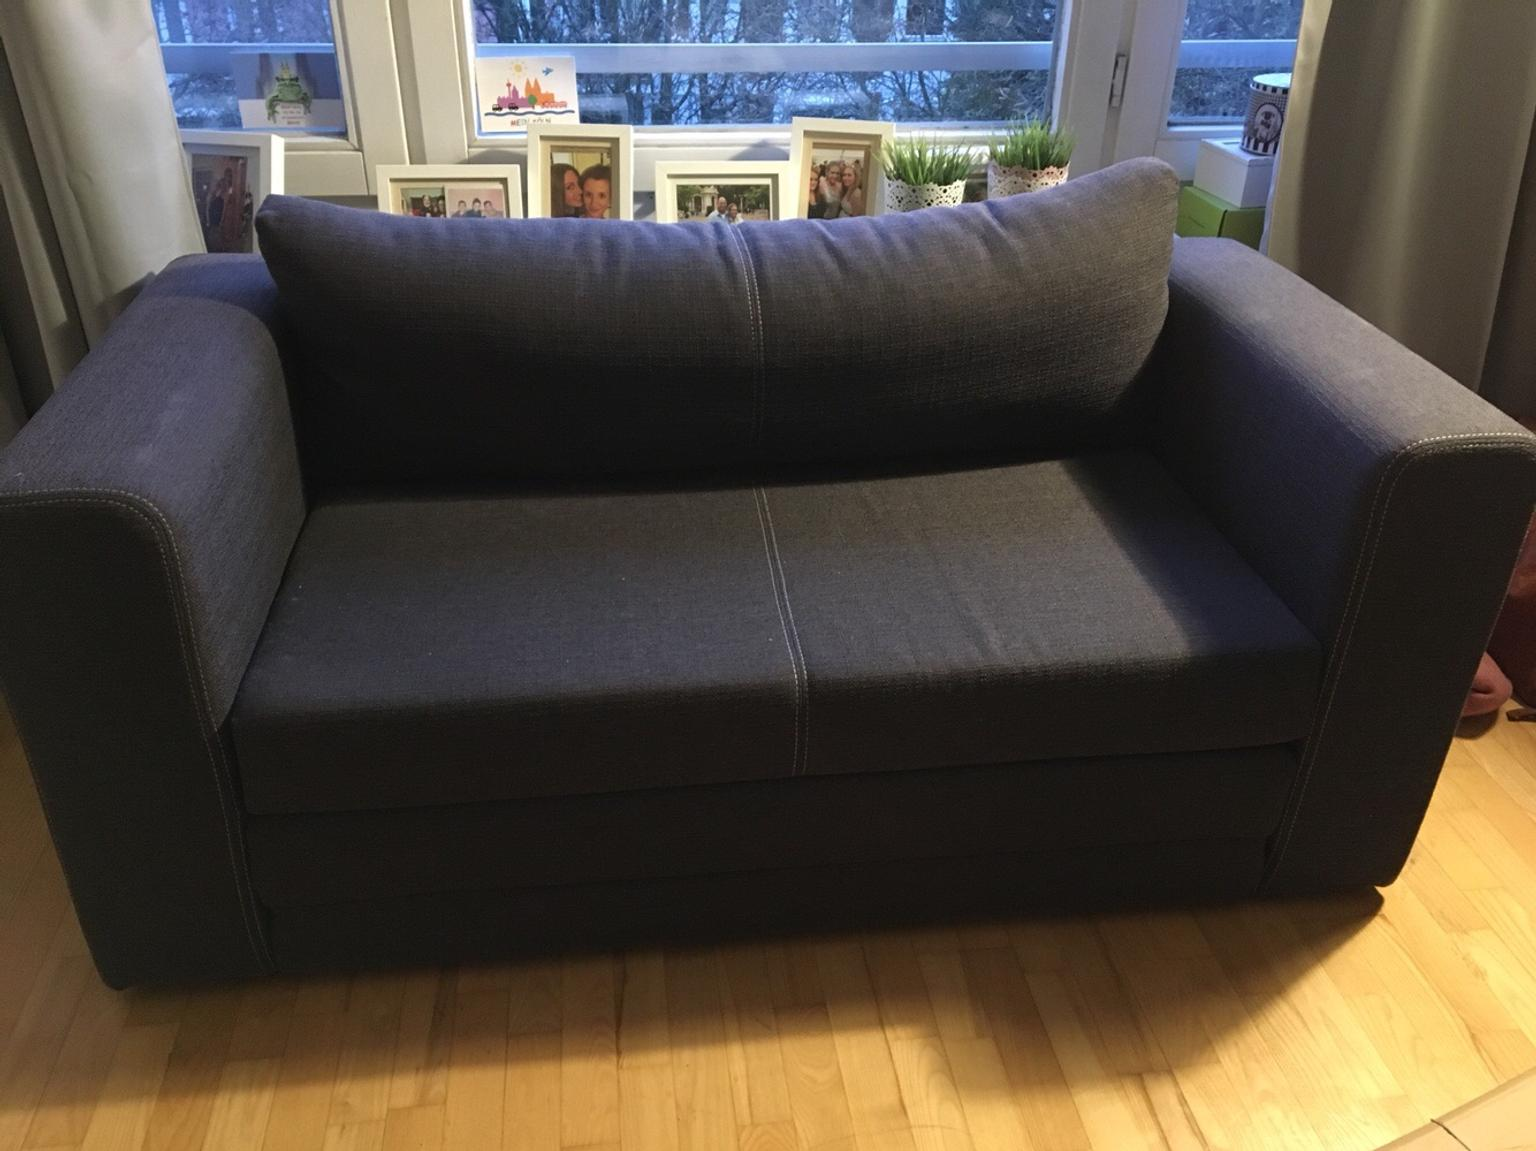 Askeby Schlafcouch Ikea